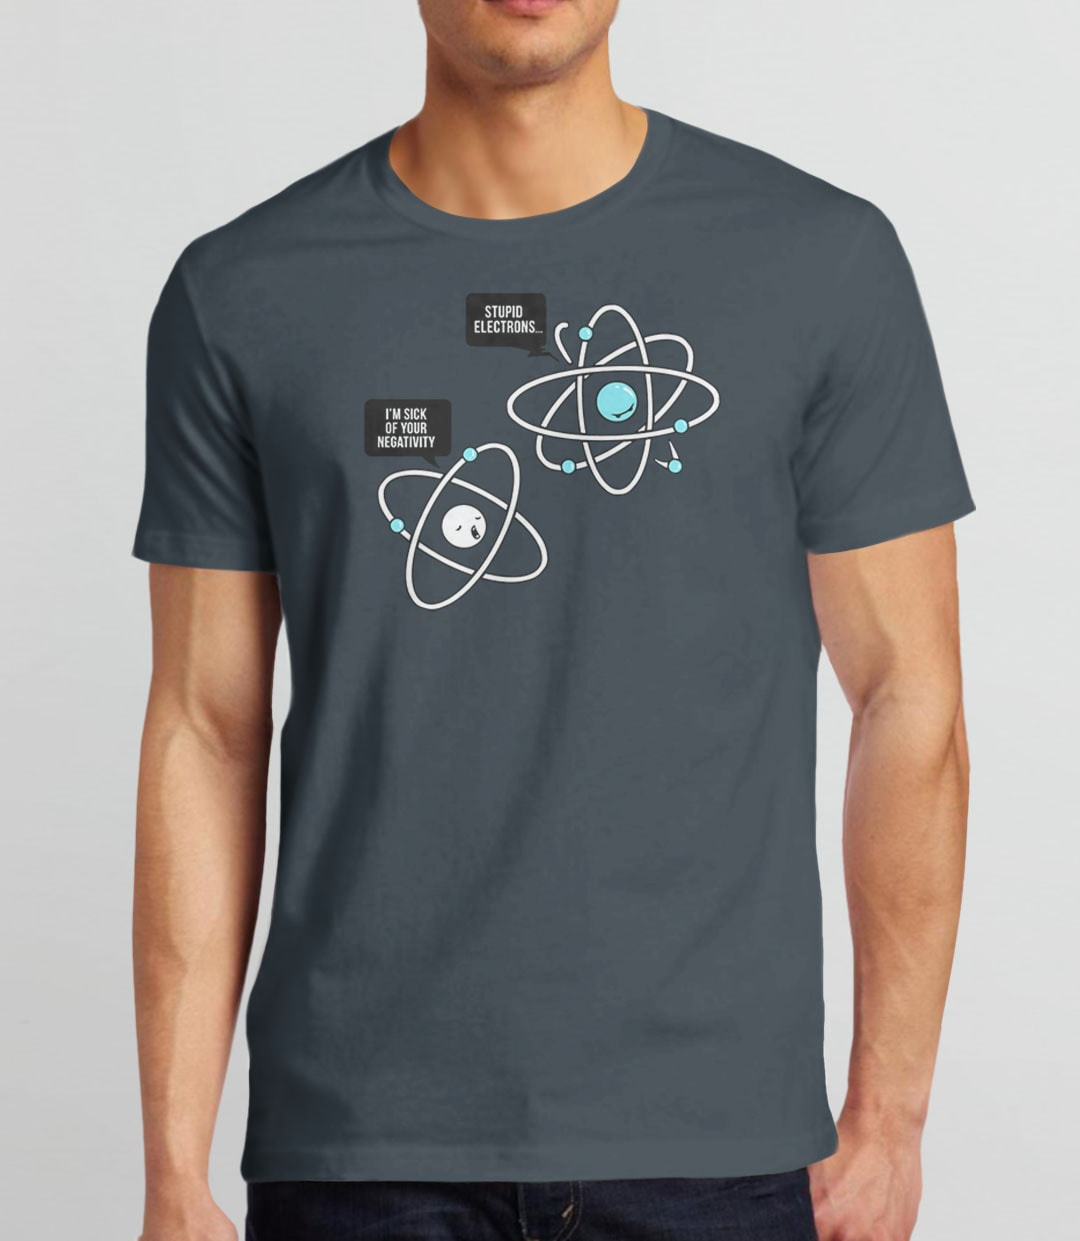 Negative Atom, Charcoal Mens (Unisex) Tee by BootsTees